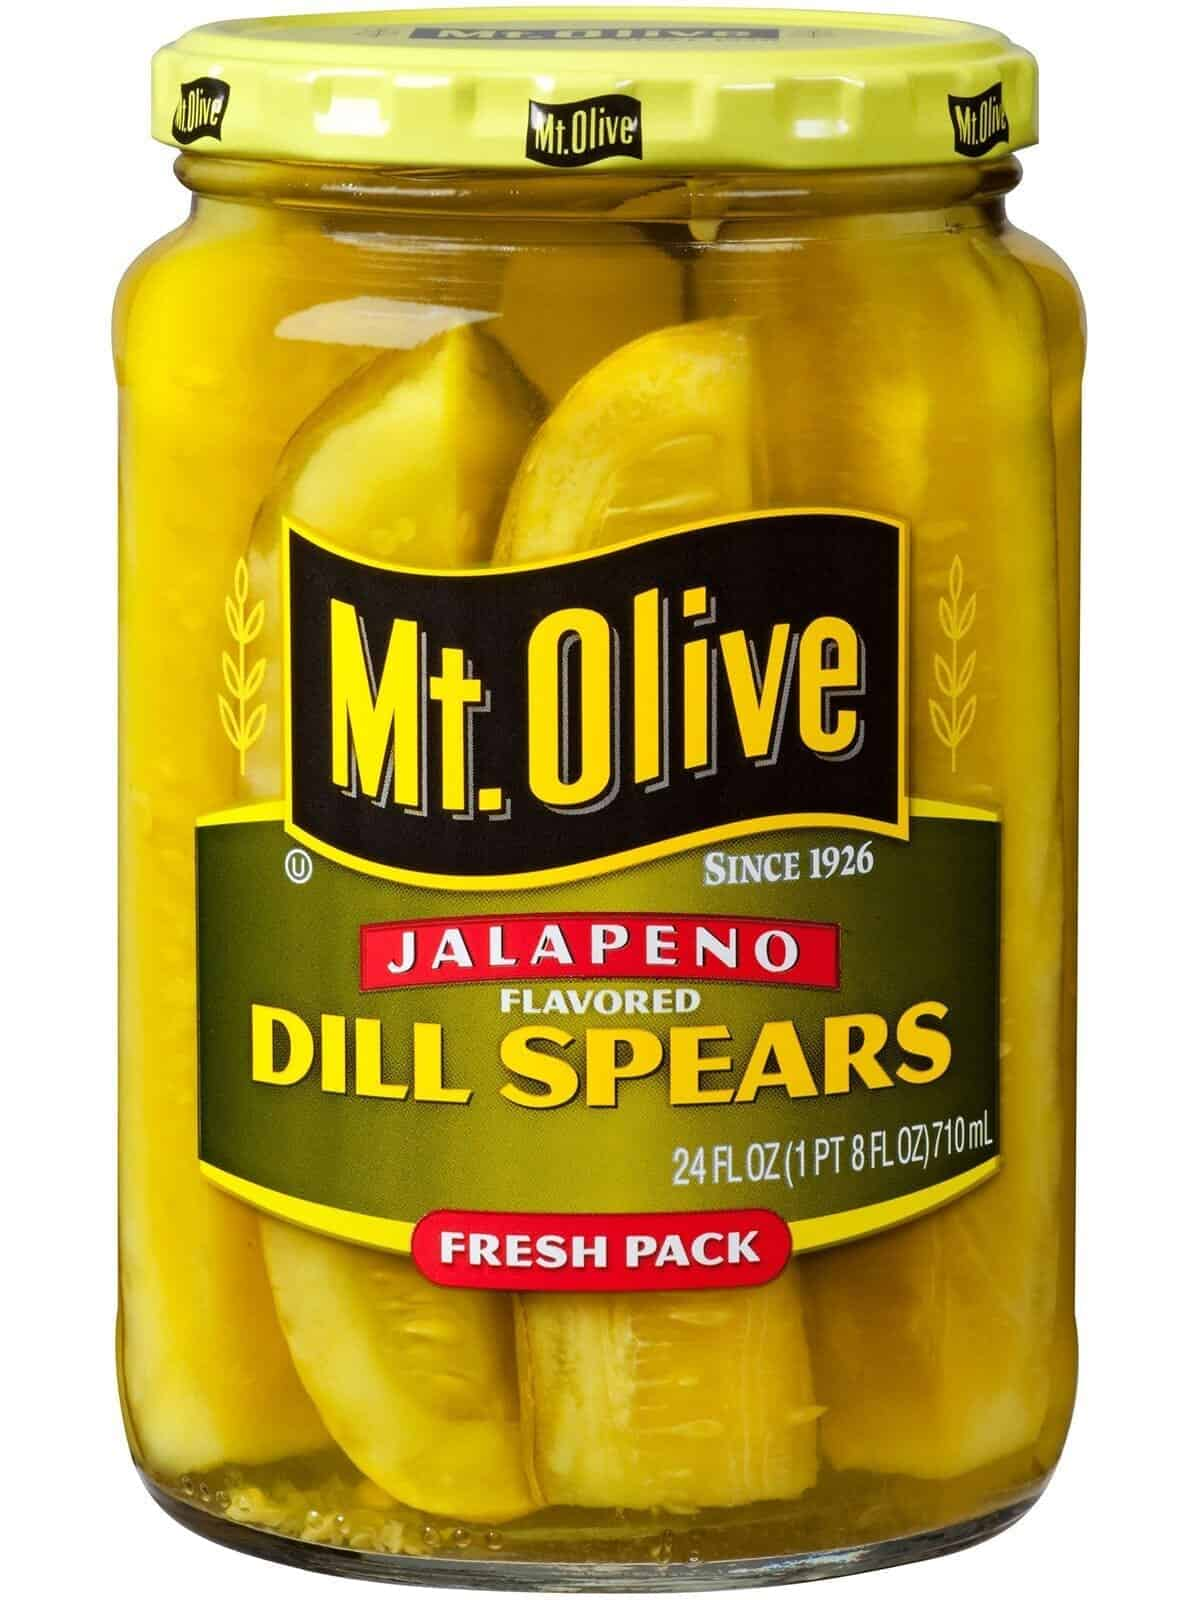 Jalapeno Flavored Dill Spears Jar